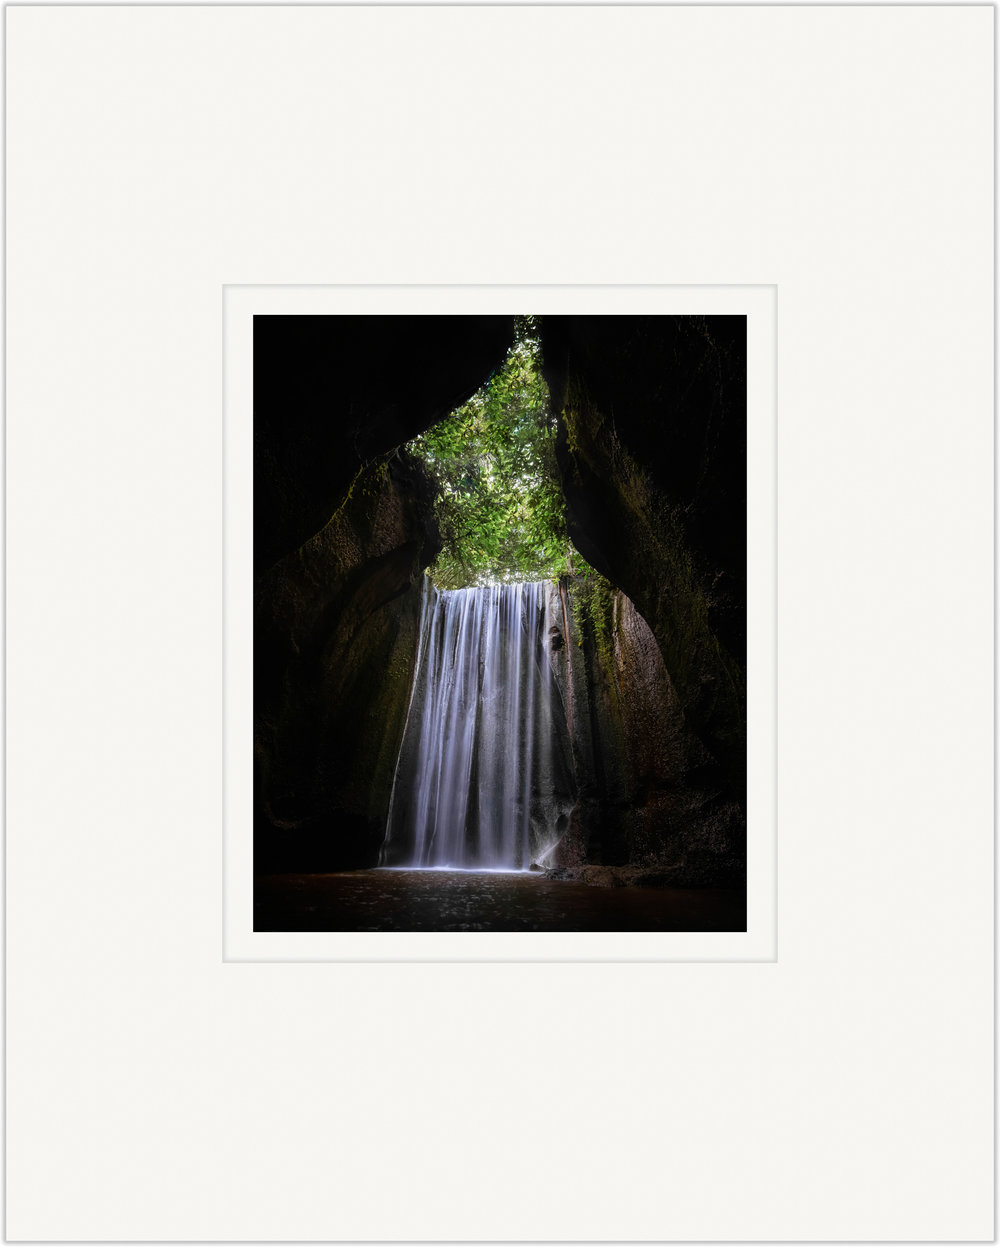 Untitled (Tukad Cepung)  20cm x 25cm Photo Paper Limited Edition of 99   IDR 399,000